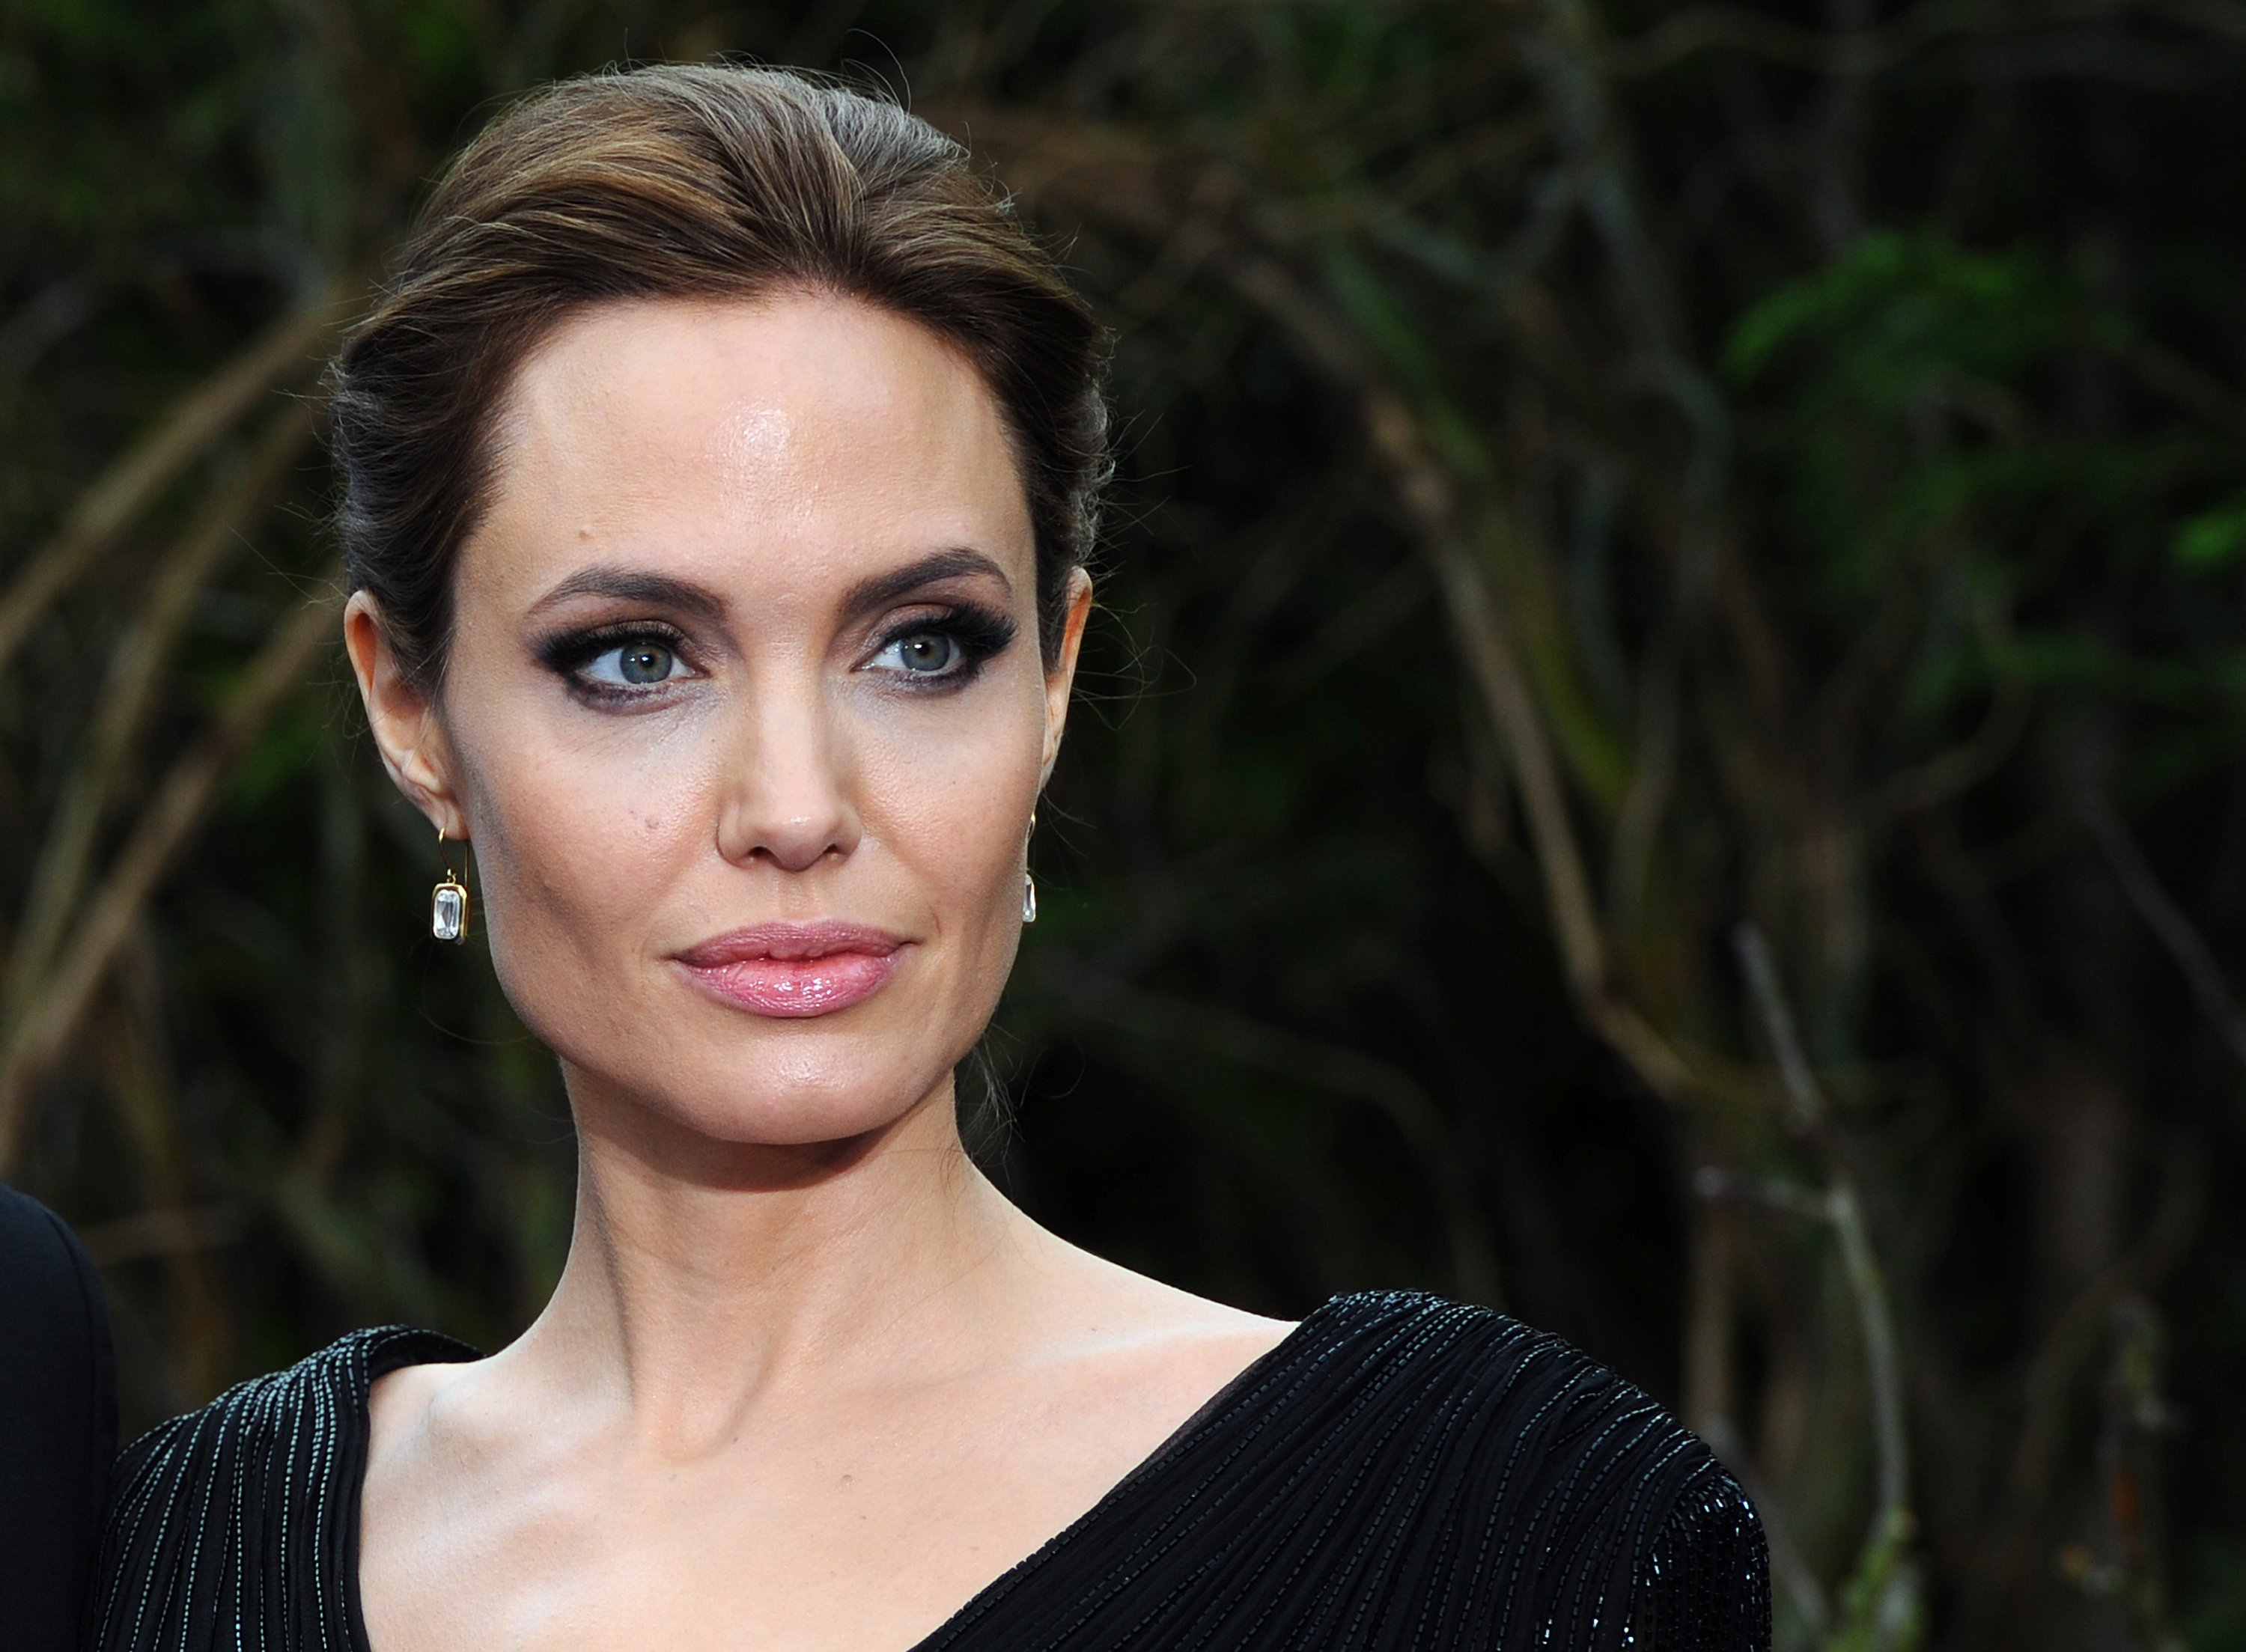 Image Credit: Getty Images/Anthony Harvey | Angelina Jolie attends a private reception for Disney's Maleficent